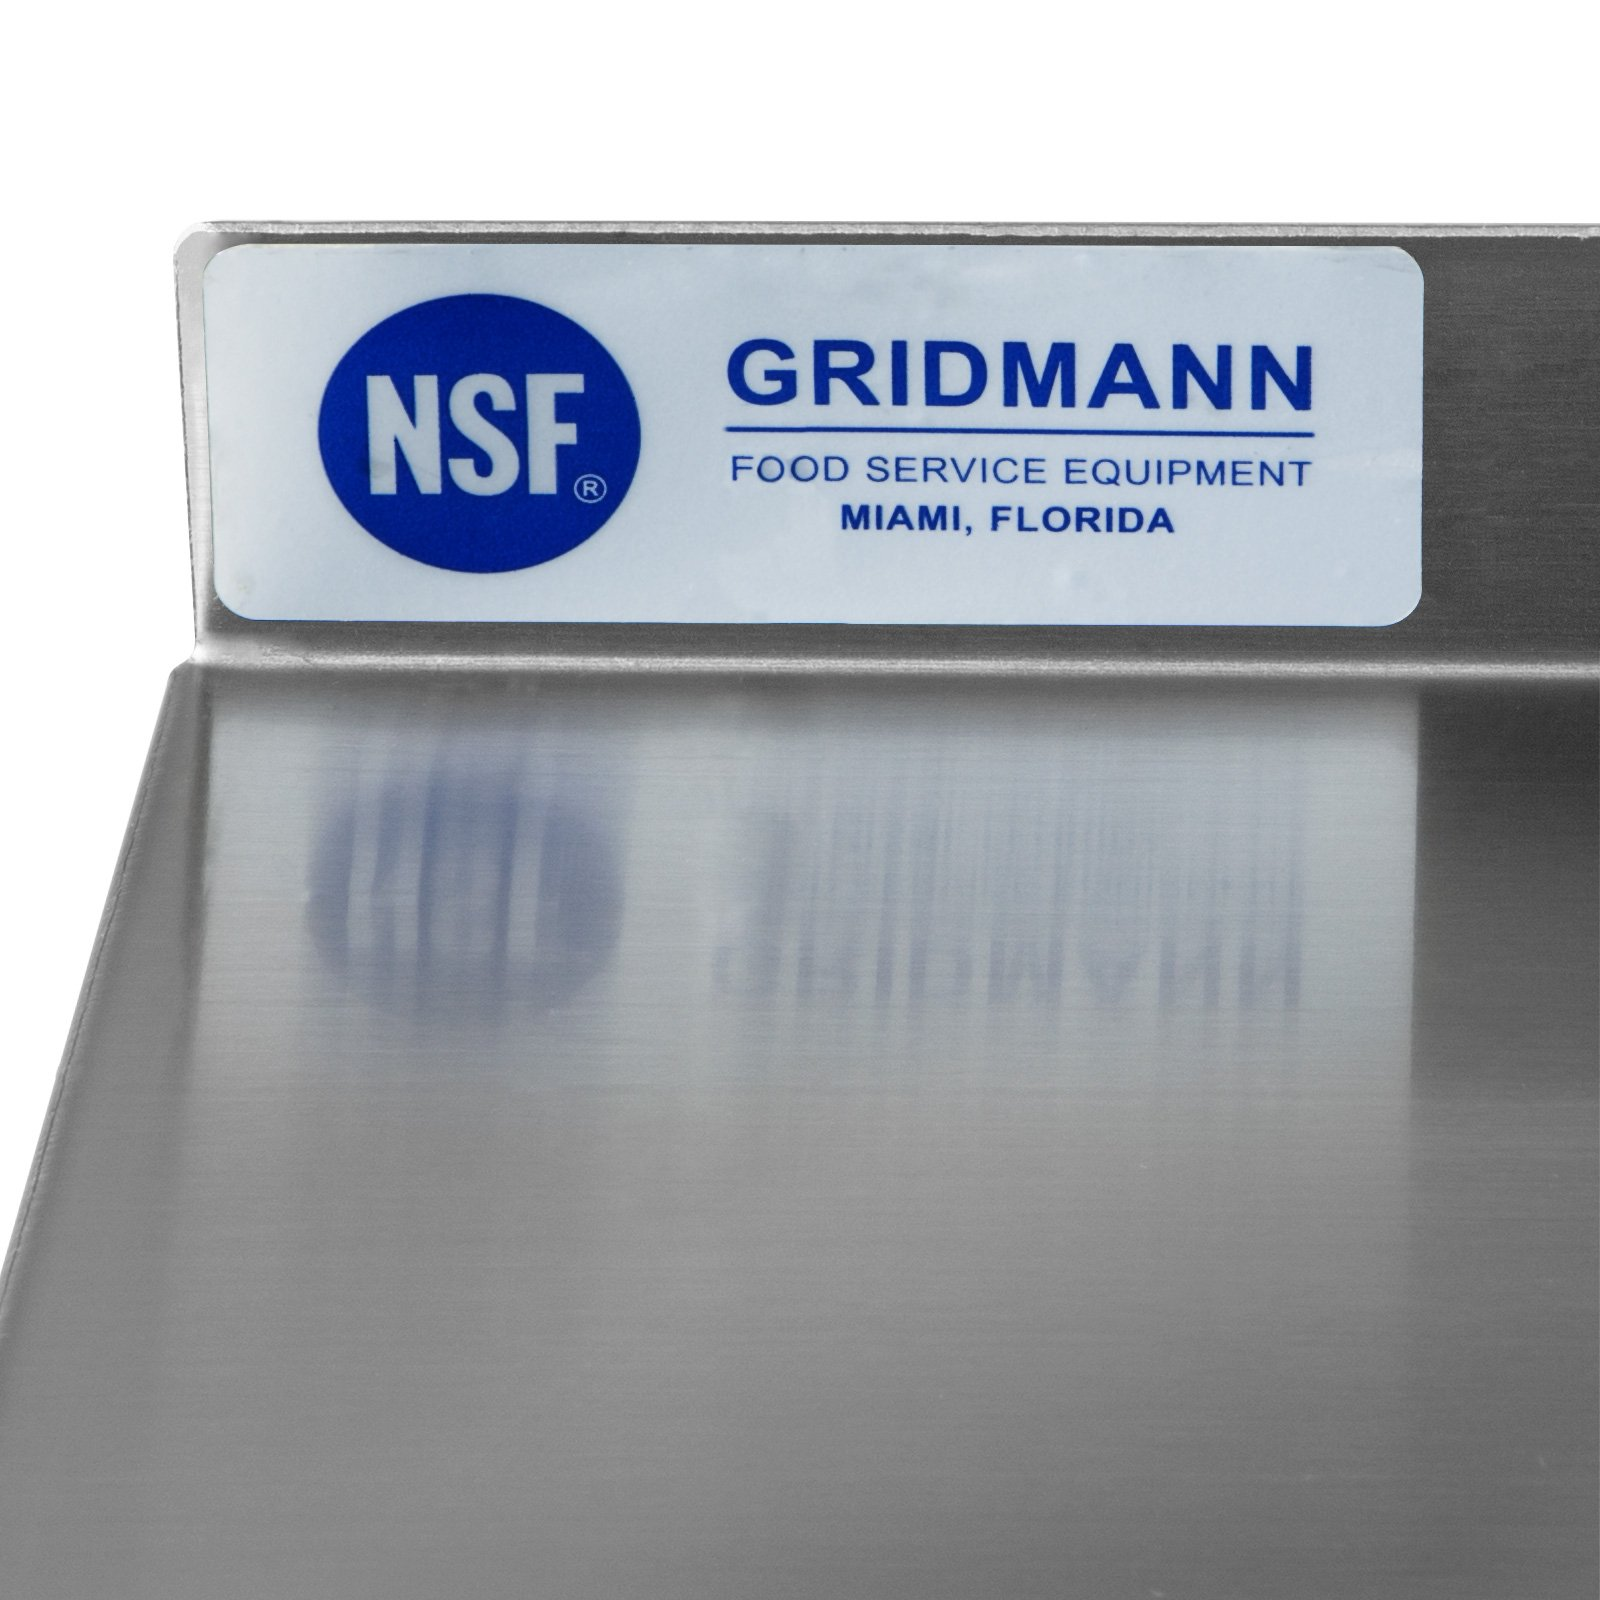 Gridmann Stainless Steel Commercial Kitchen Prep & Work Table with Backsplash, 48 x 24 Inches by Gridmann (Image #5)